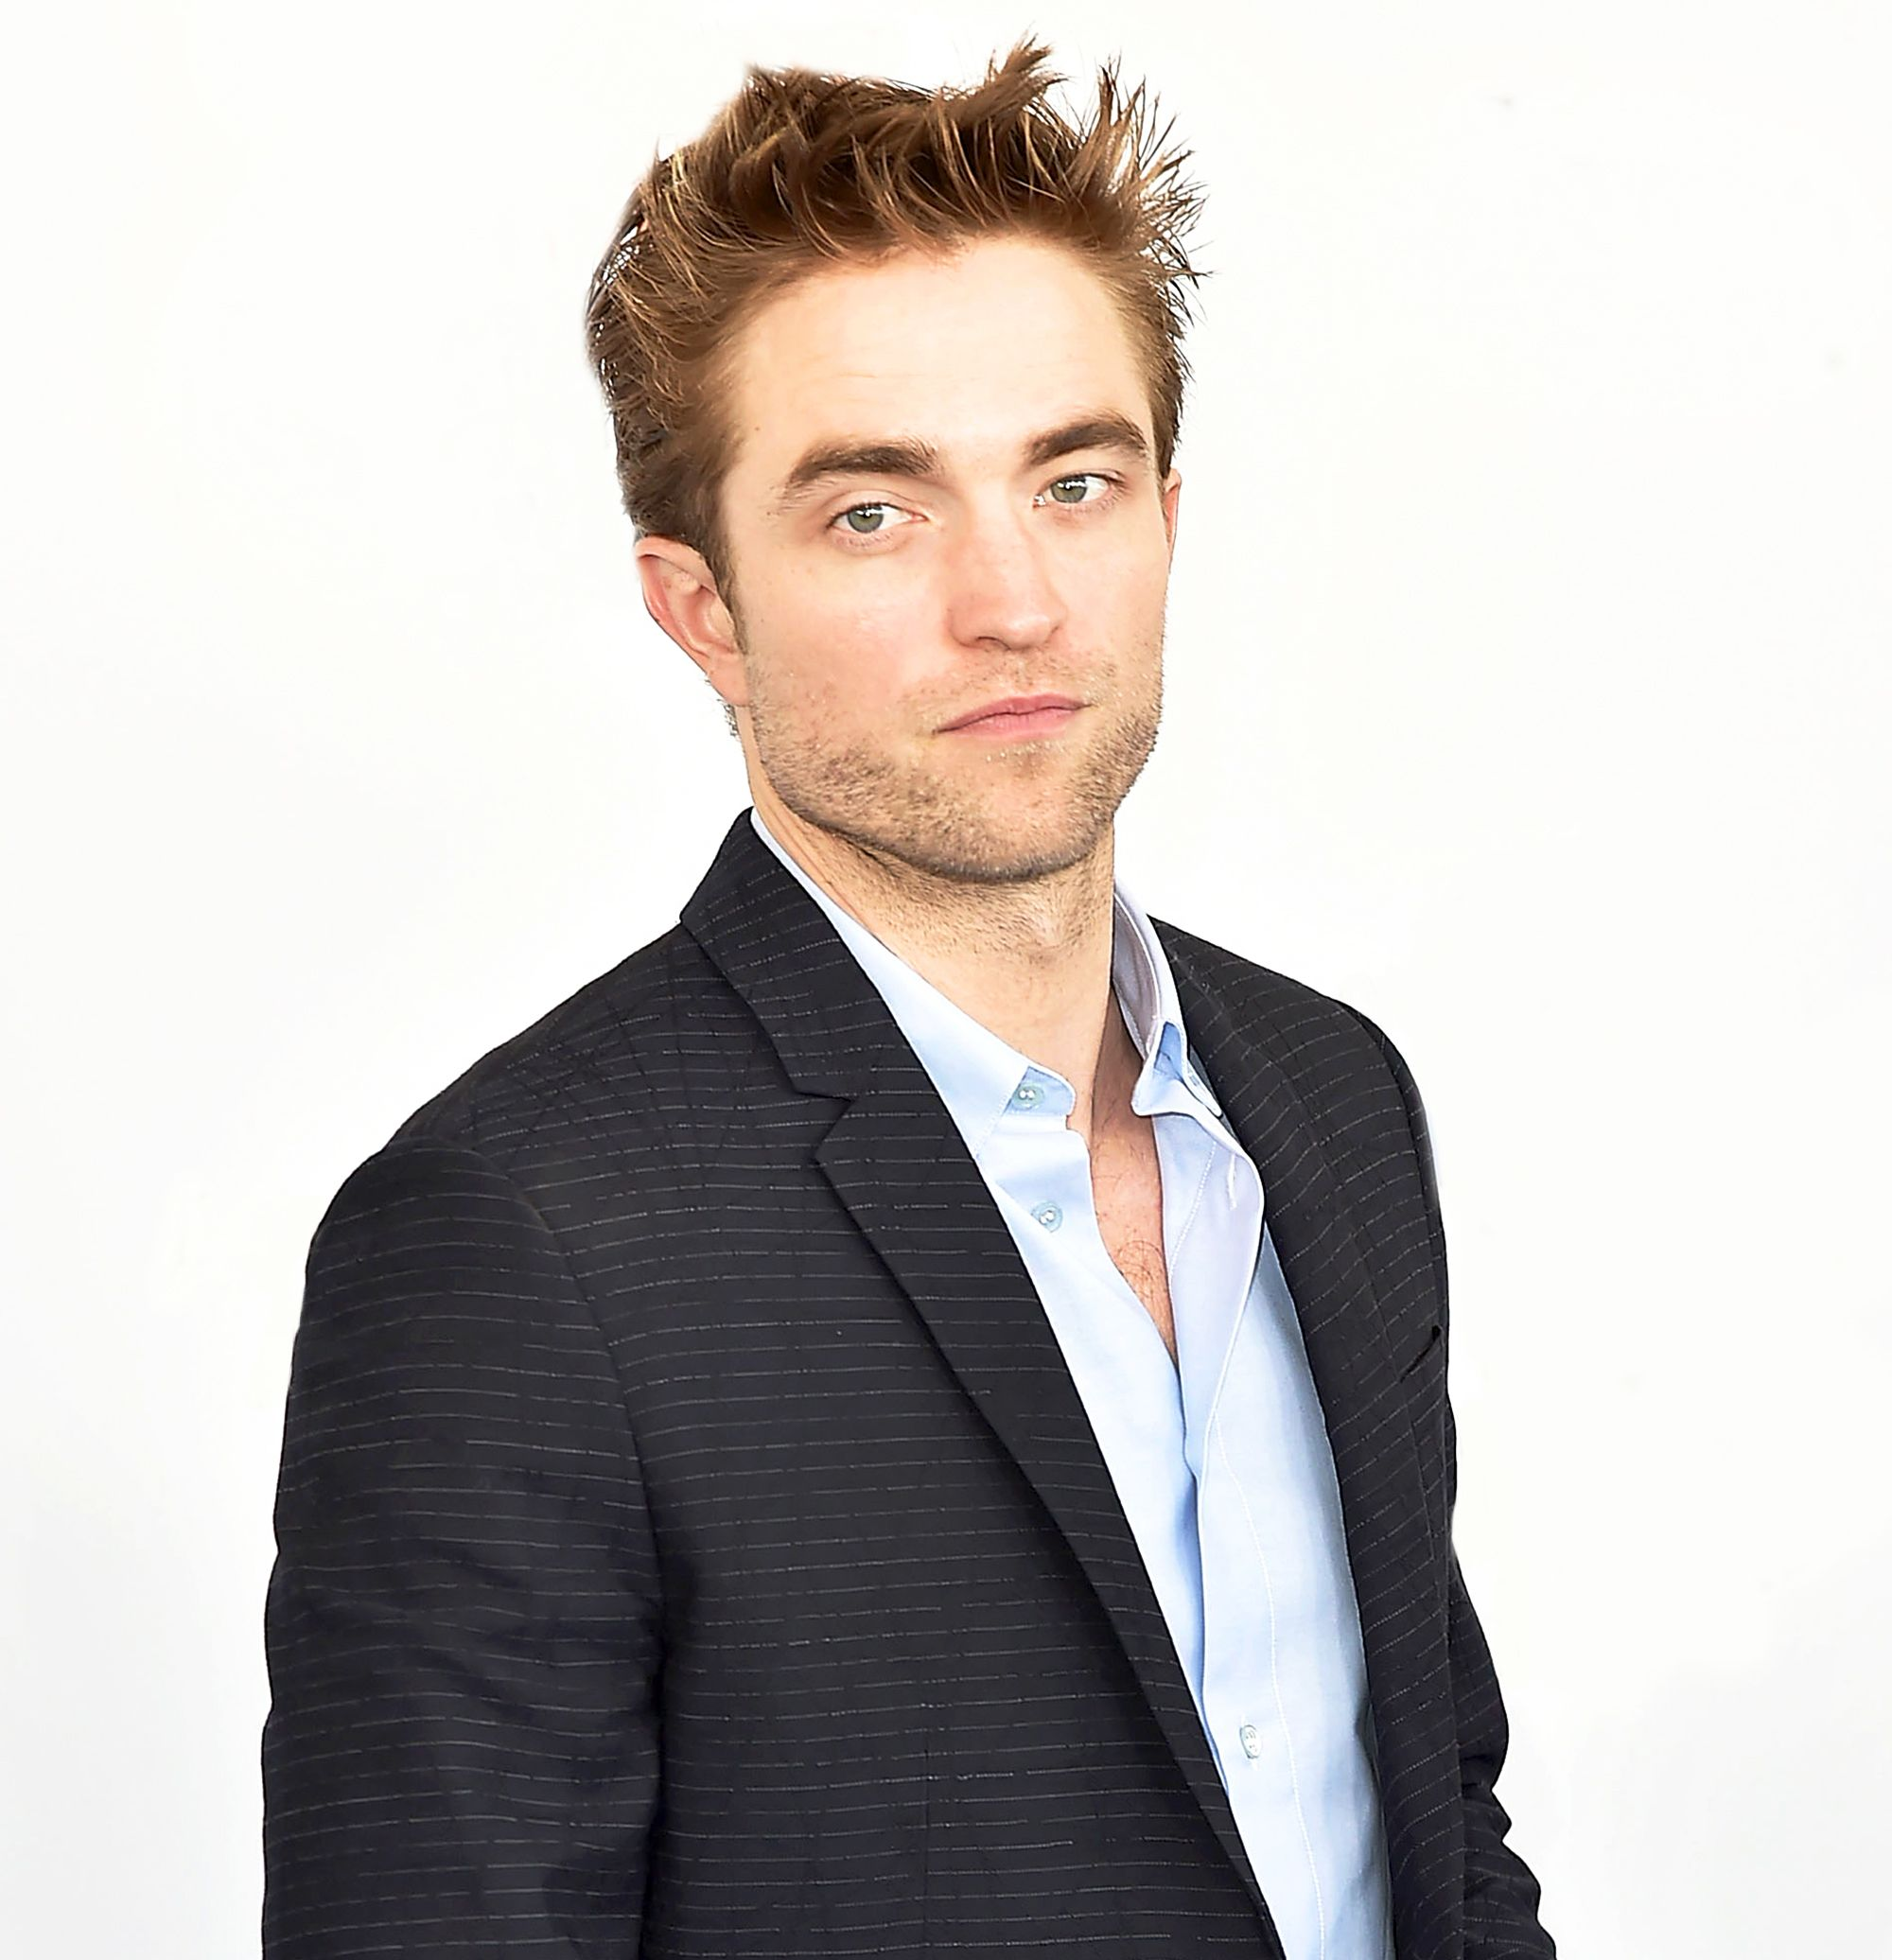 Robert Pattinson  - 2021 Light brown hair & exotic hair style.